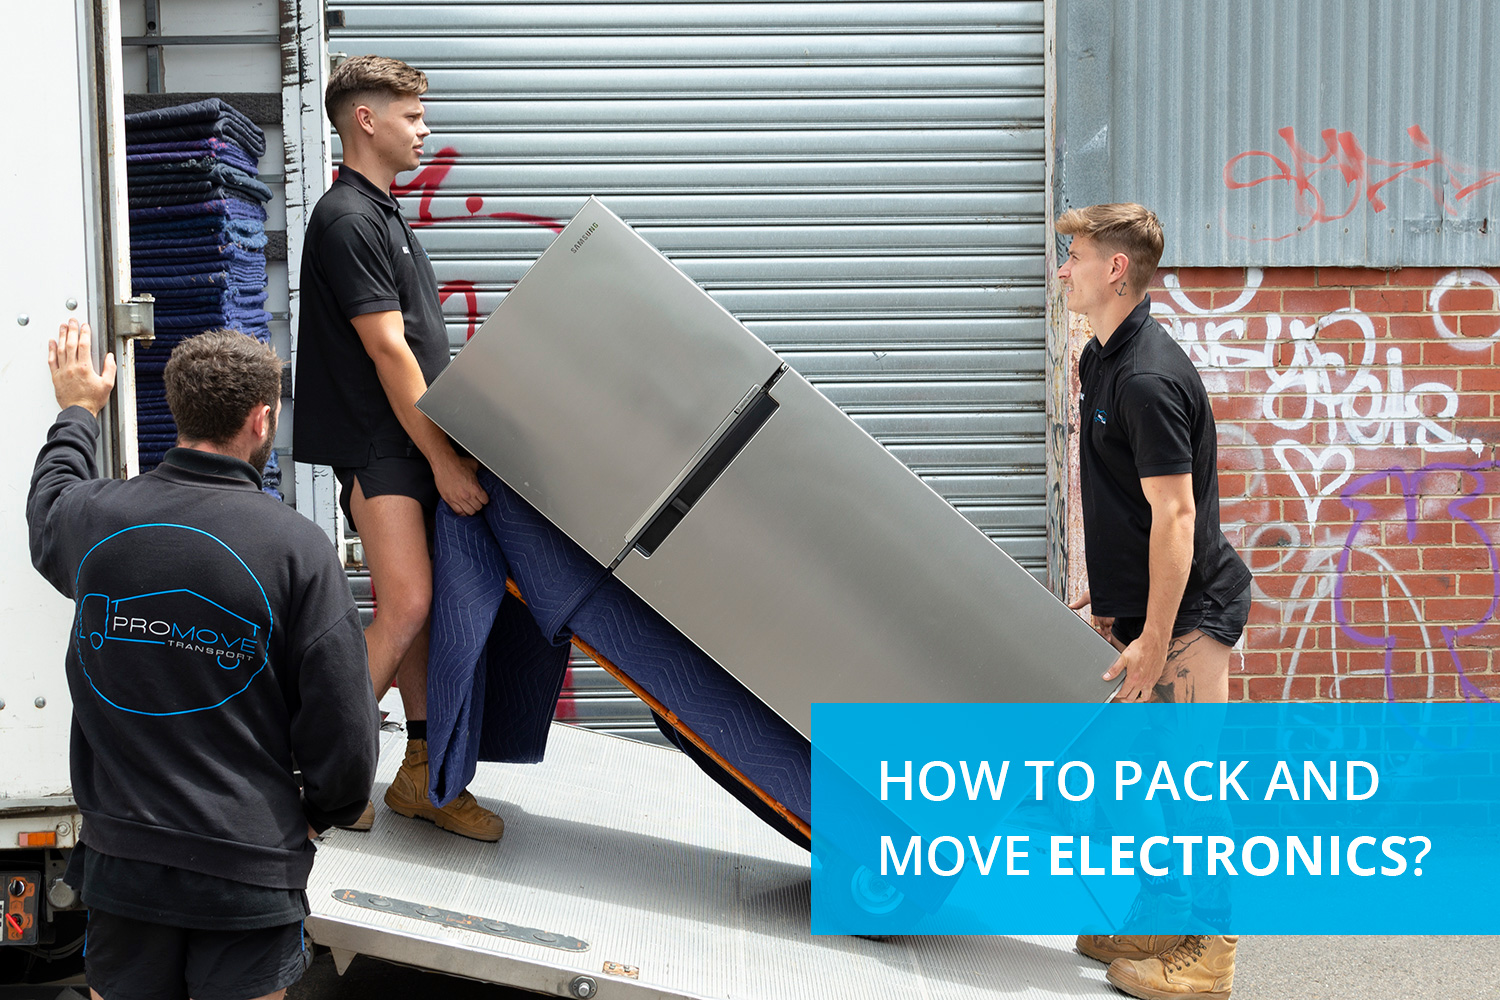 How to Pack and Move Electronics?